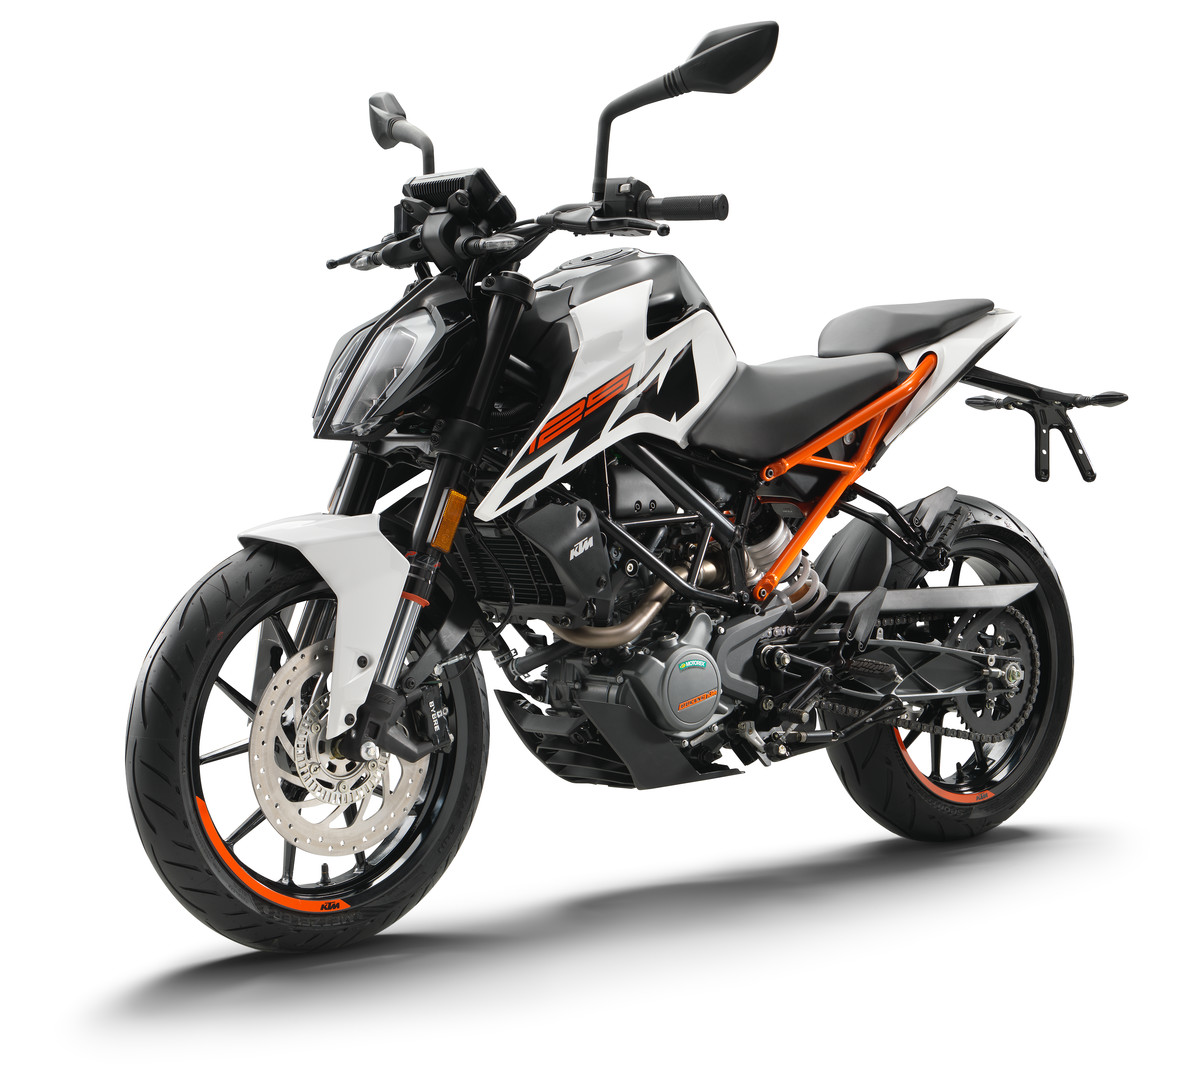 2017 duke 125 white new ktm bikes triple d motosport. Black Bedroom Furniture Sets. Home Design Ideas